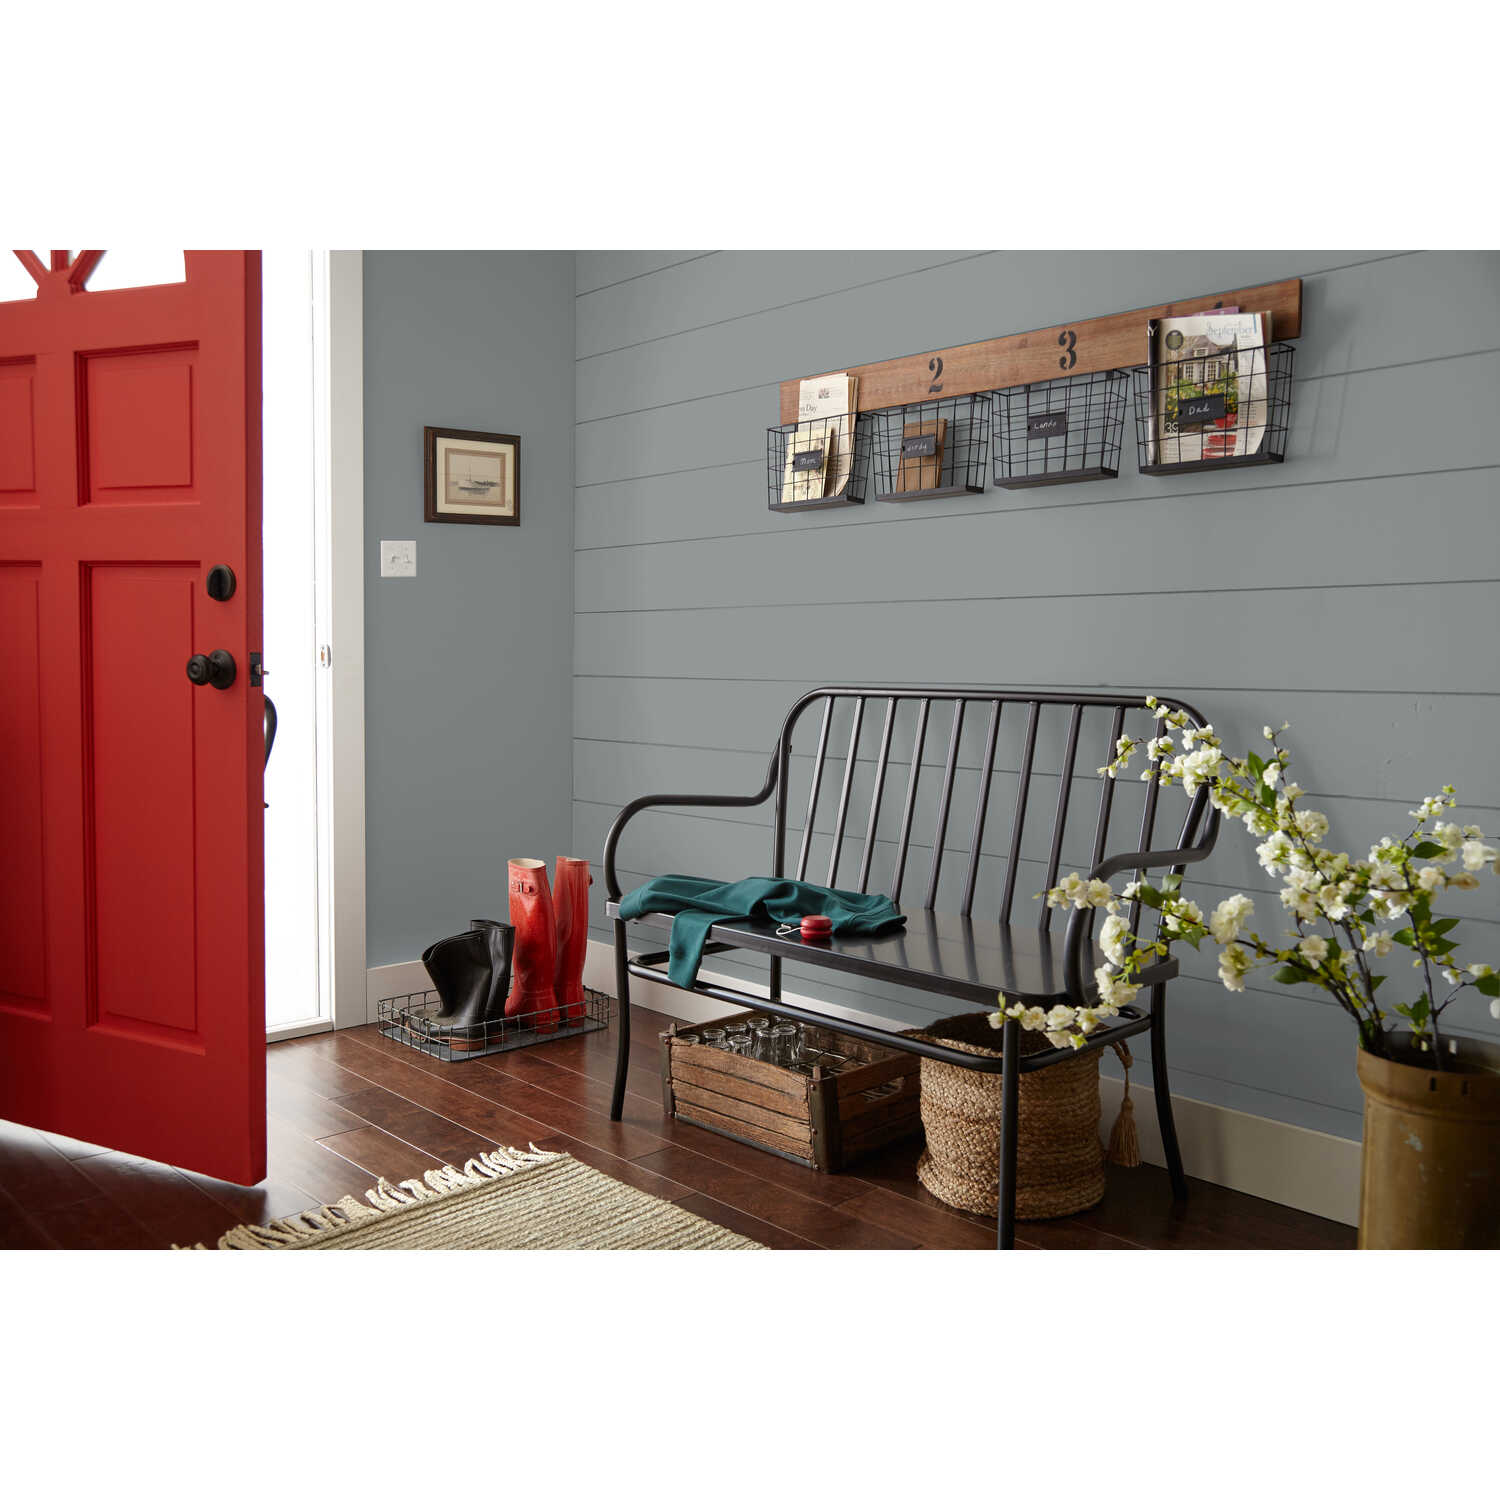 Magnolia Home  by Joanna Gaines  Eggshell  Times Past  Medium Base  Acrylic  Paint  Indoor  1 gal.